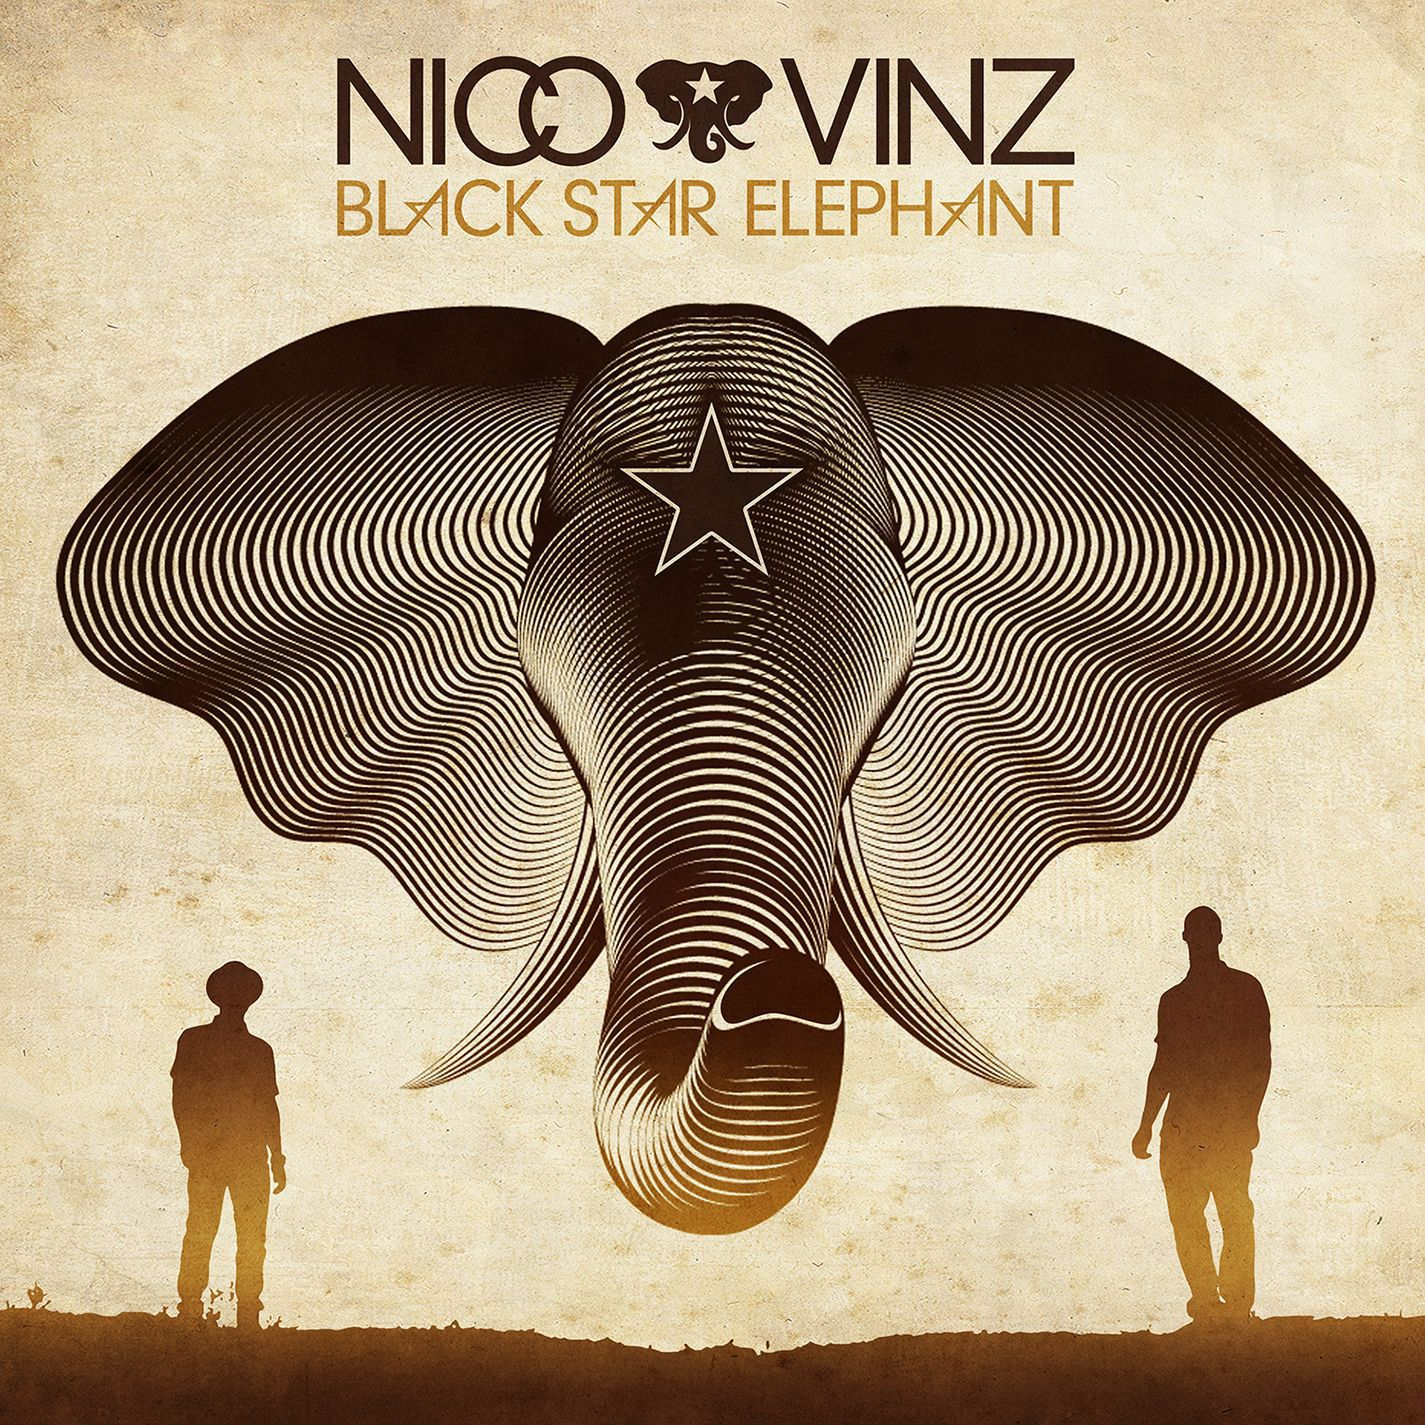 Black Star Elephant by Nico & Vinz on iTunes | I need their album so ...